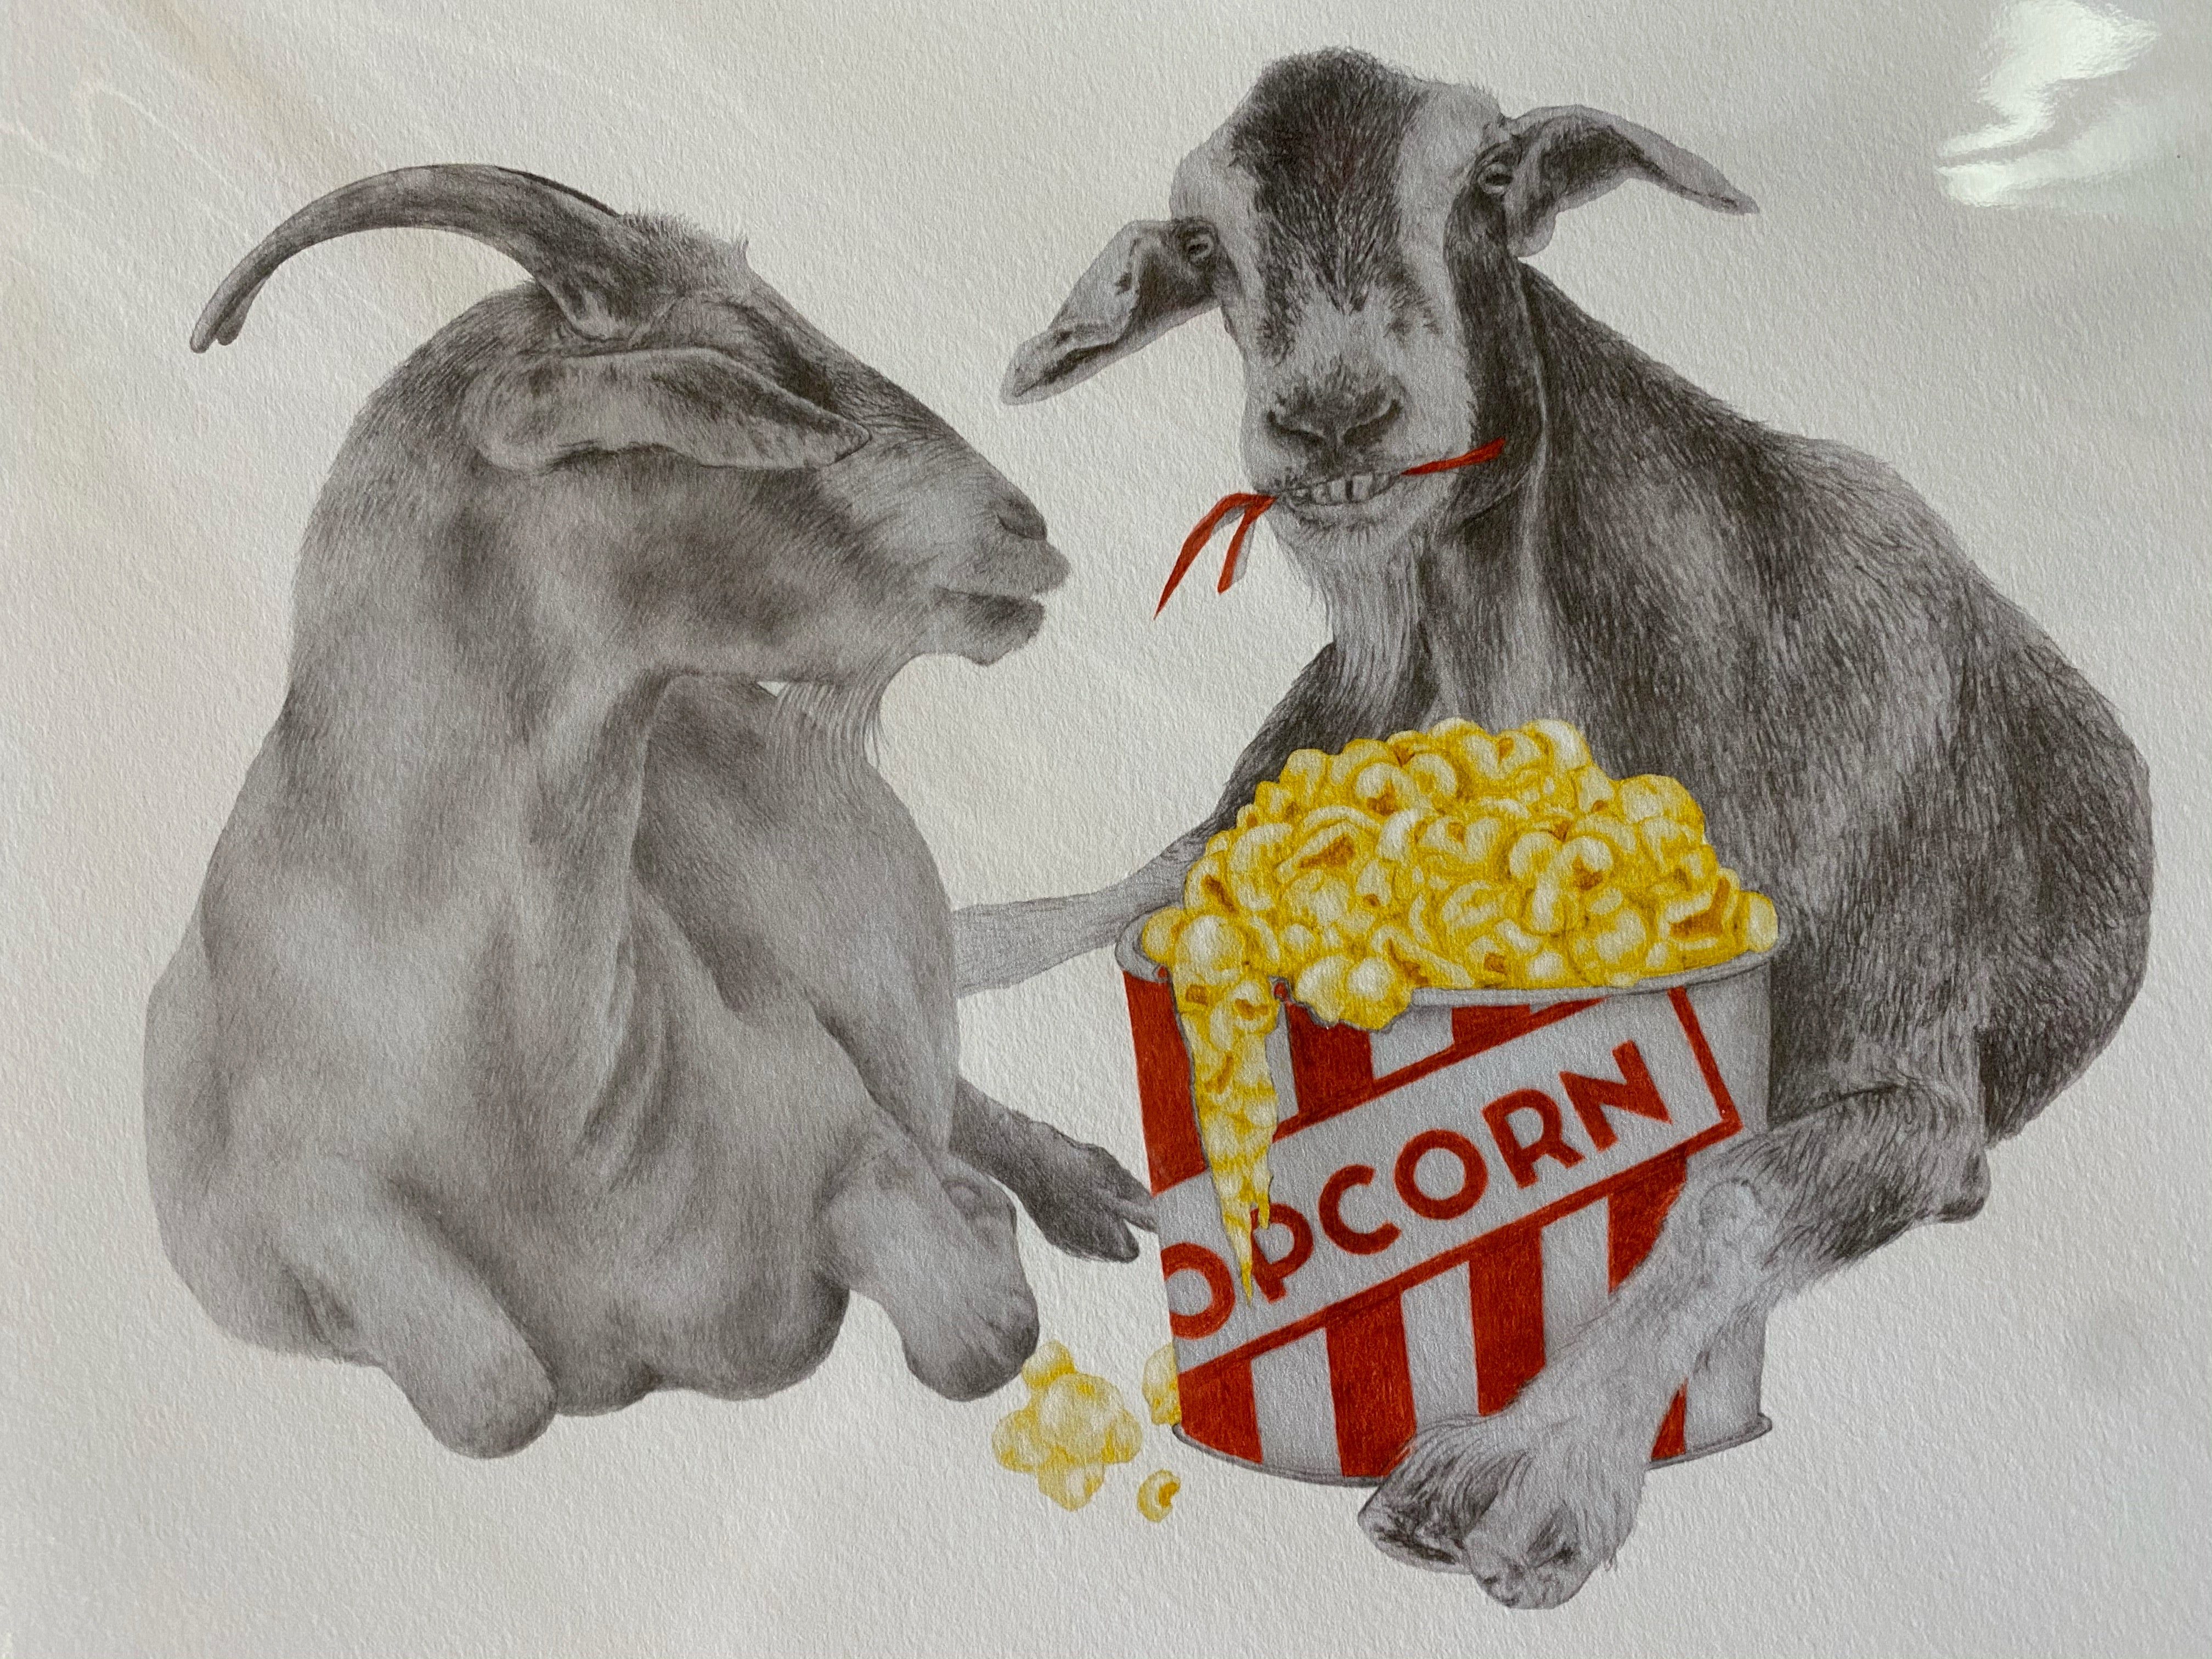 Goats eating popcorn print by Central and Gus